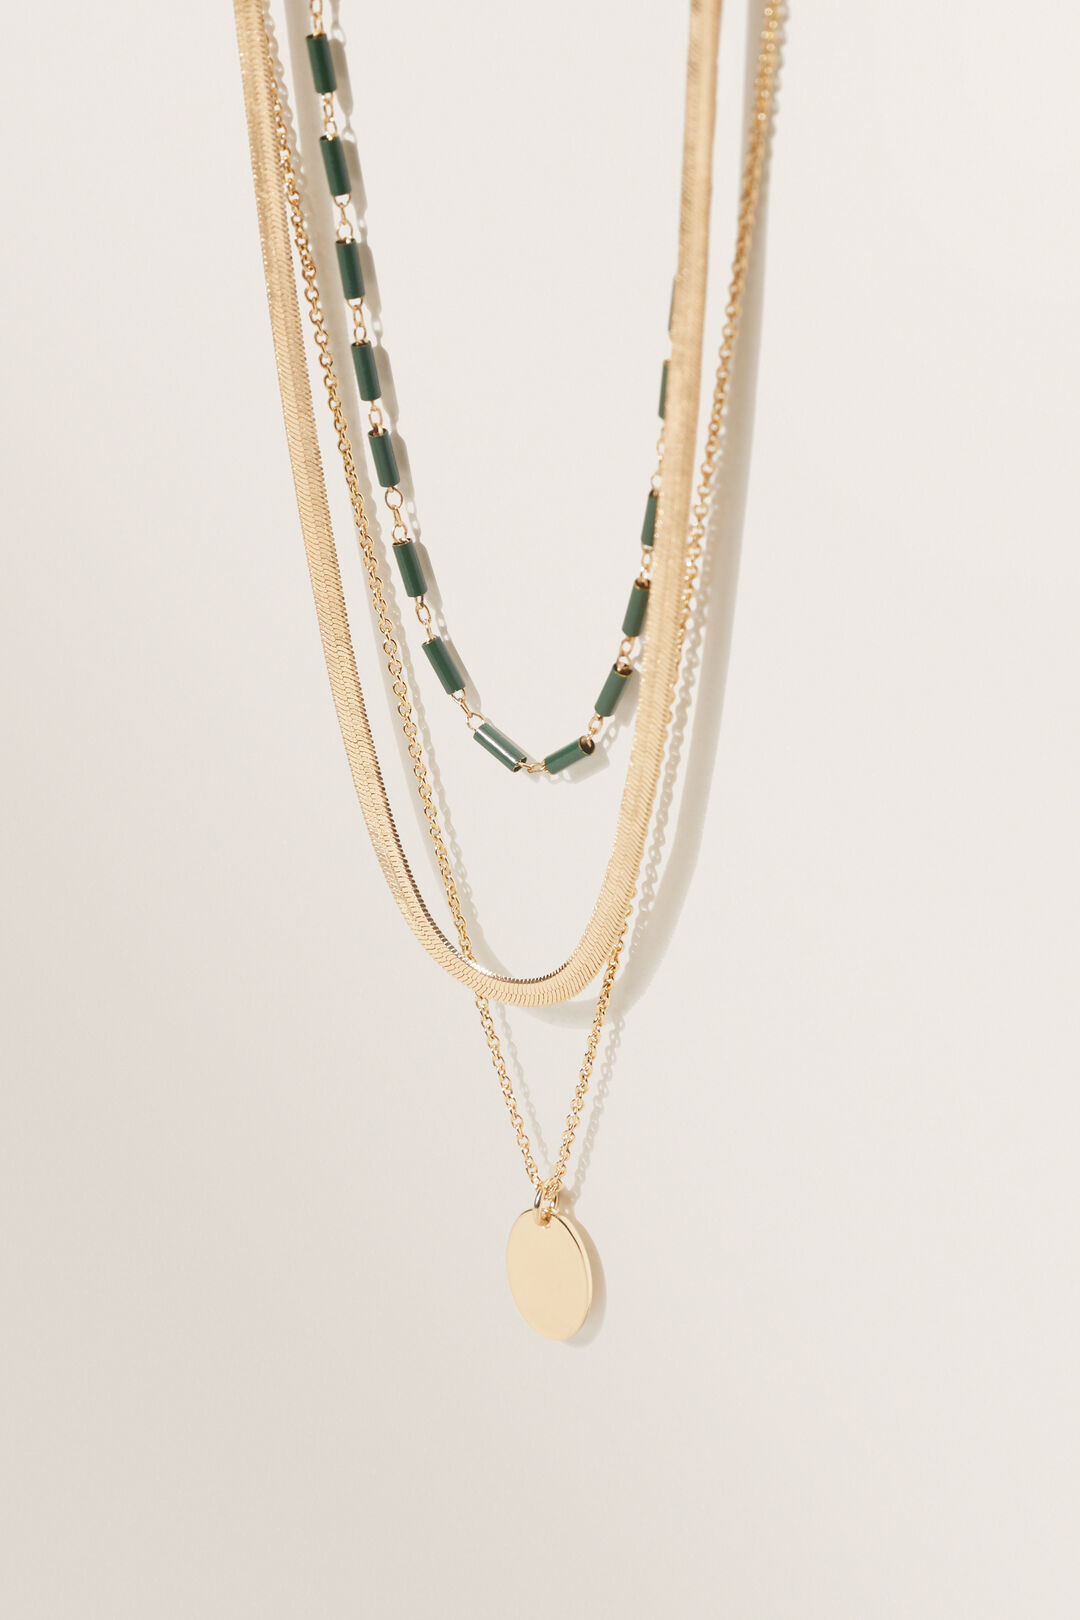 Beaded Pendant Necklace  GOLD BASIL  hi-res